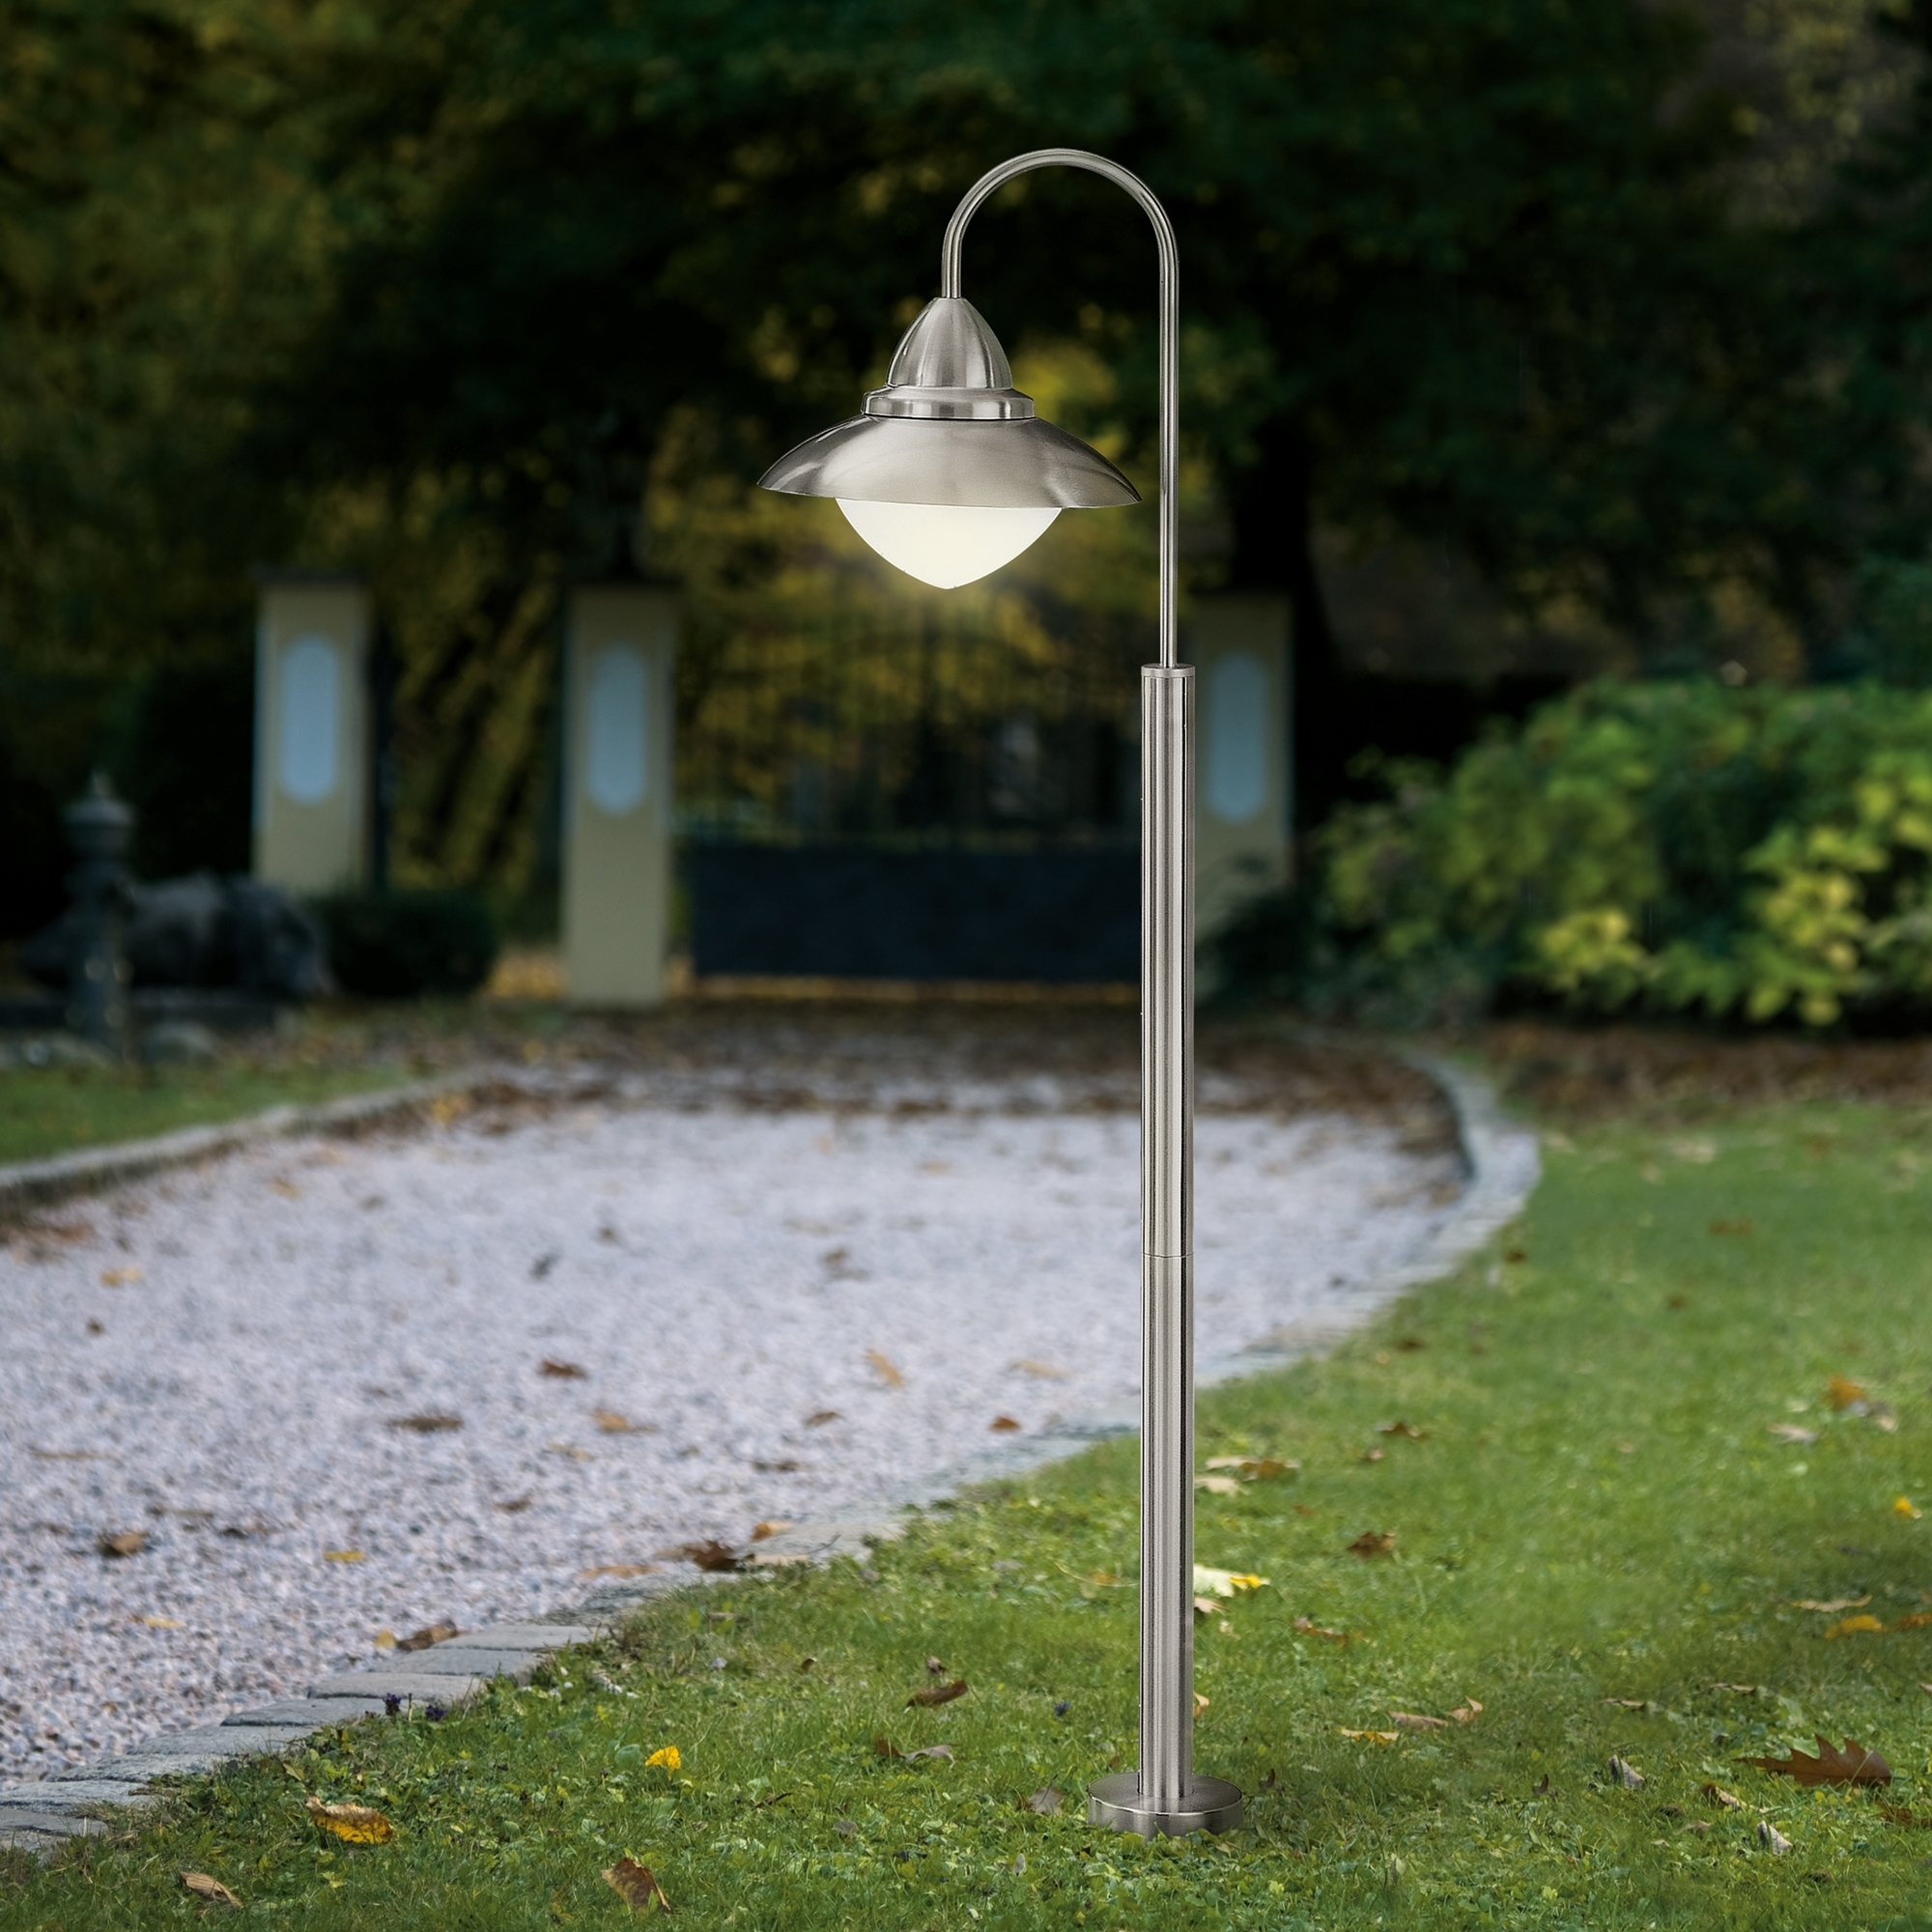 87105 / Sidney / Outdoor Lighting / Main Collections / Products Inside Eglo Outdoor Lighting (#3 of 15)